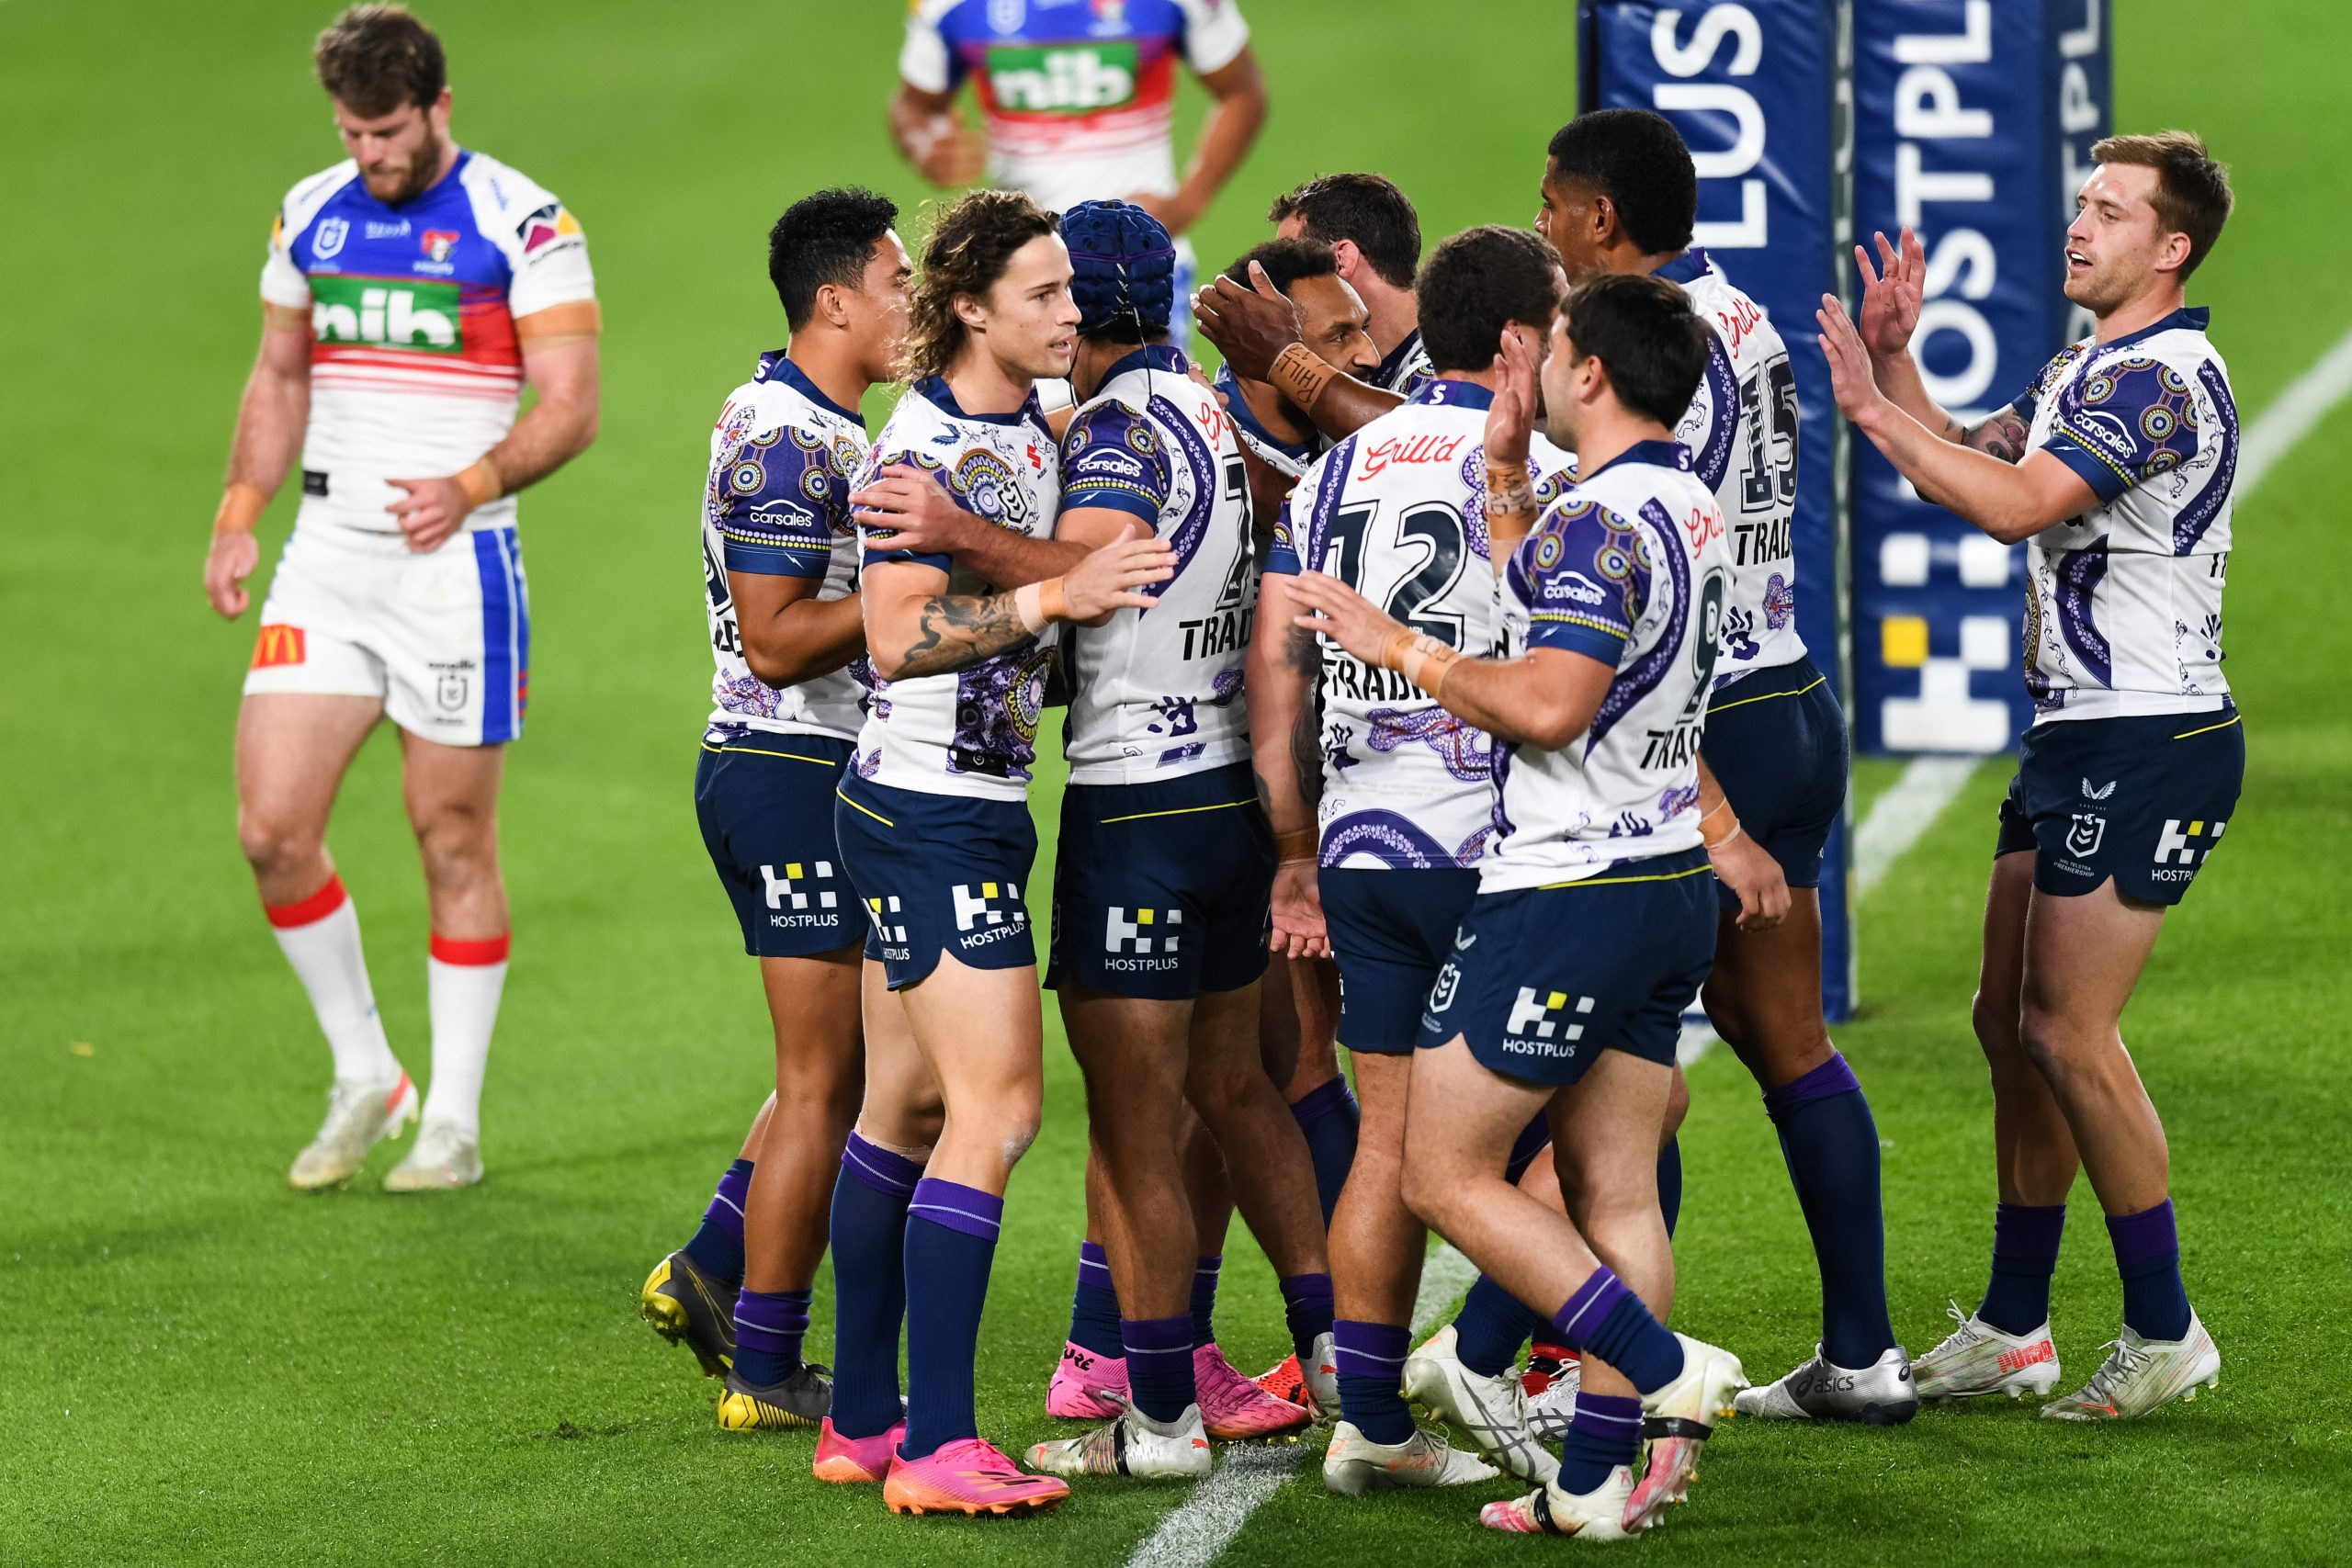 Super Storm defeat Newcastle on the Gold Coast